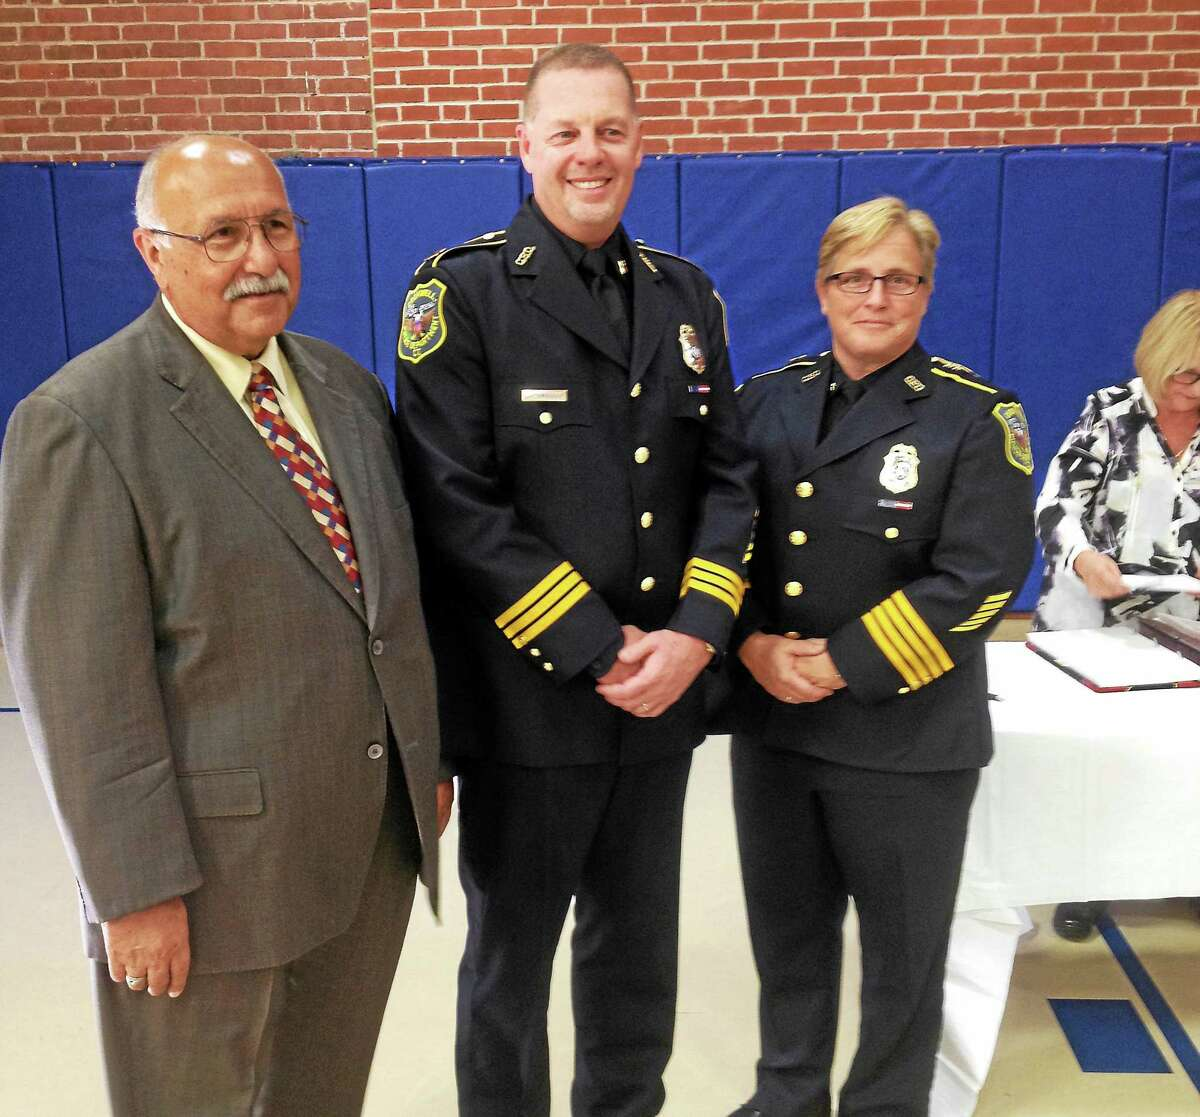 VanderSloot is flanked on the left by Cromwell Town Manager Anthony Salvatore, and on the right by Police Chief Denise Lamontagne.